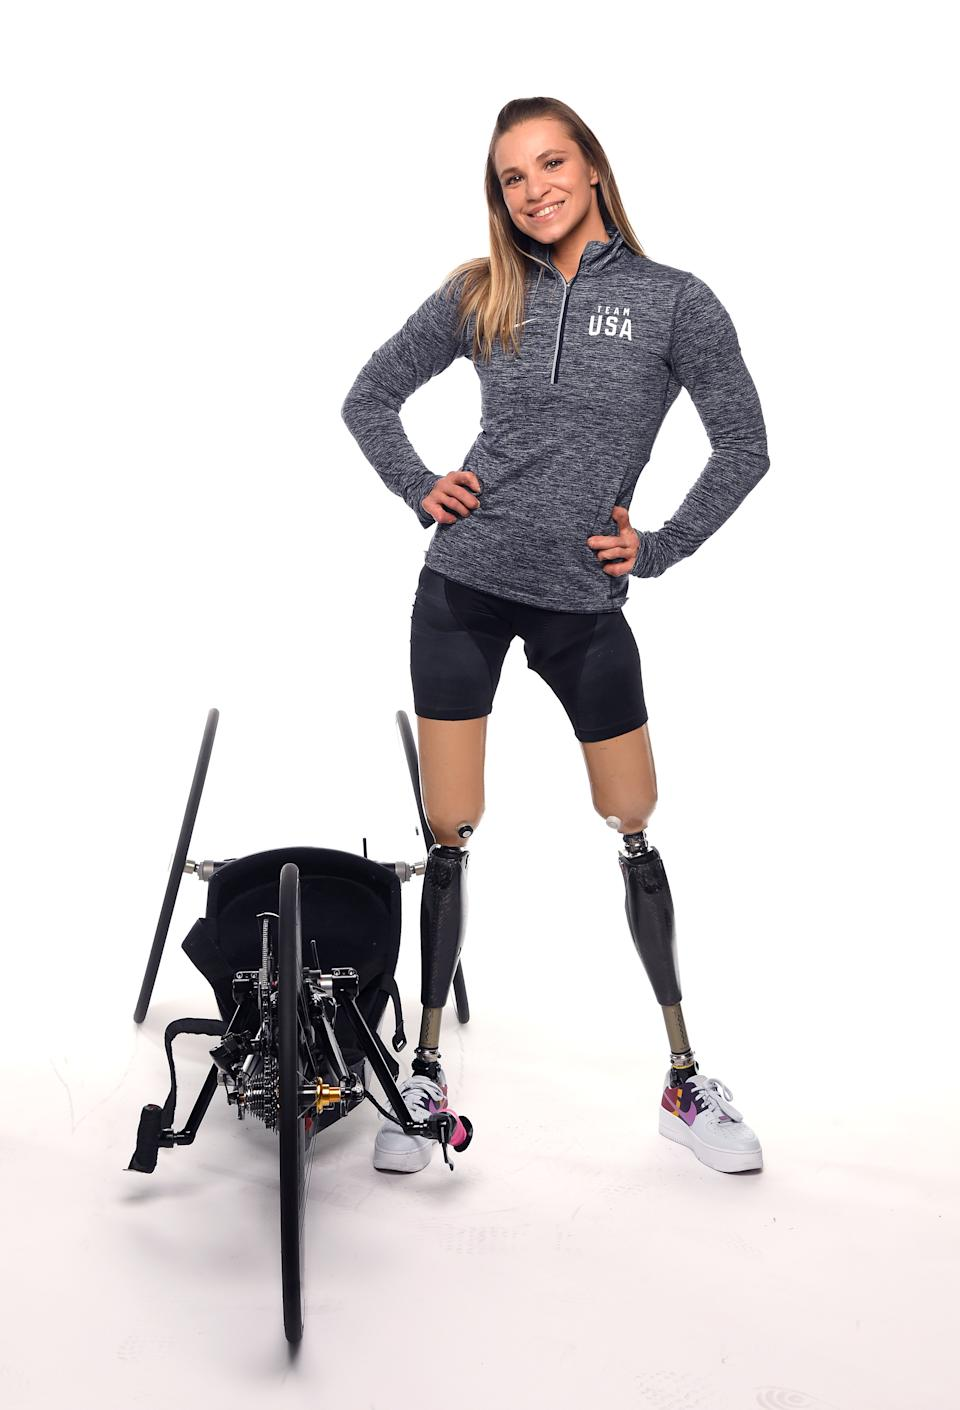 WEST HOLLYWOOD, CALIFORNIA - NOVEMBER 20: Para cyclist Oksana Masters poses for a portrait during the Team USA Tokyo 2020 Olympics shoot on November 20, 2019 in West Hollywood, California. (Photo by Harry How/Getty Images)